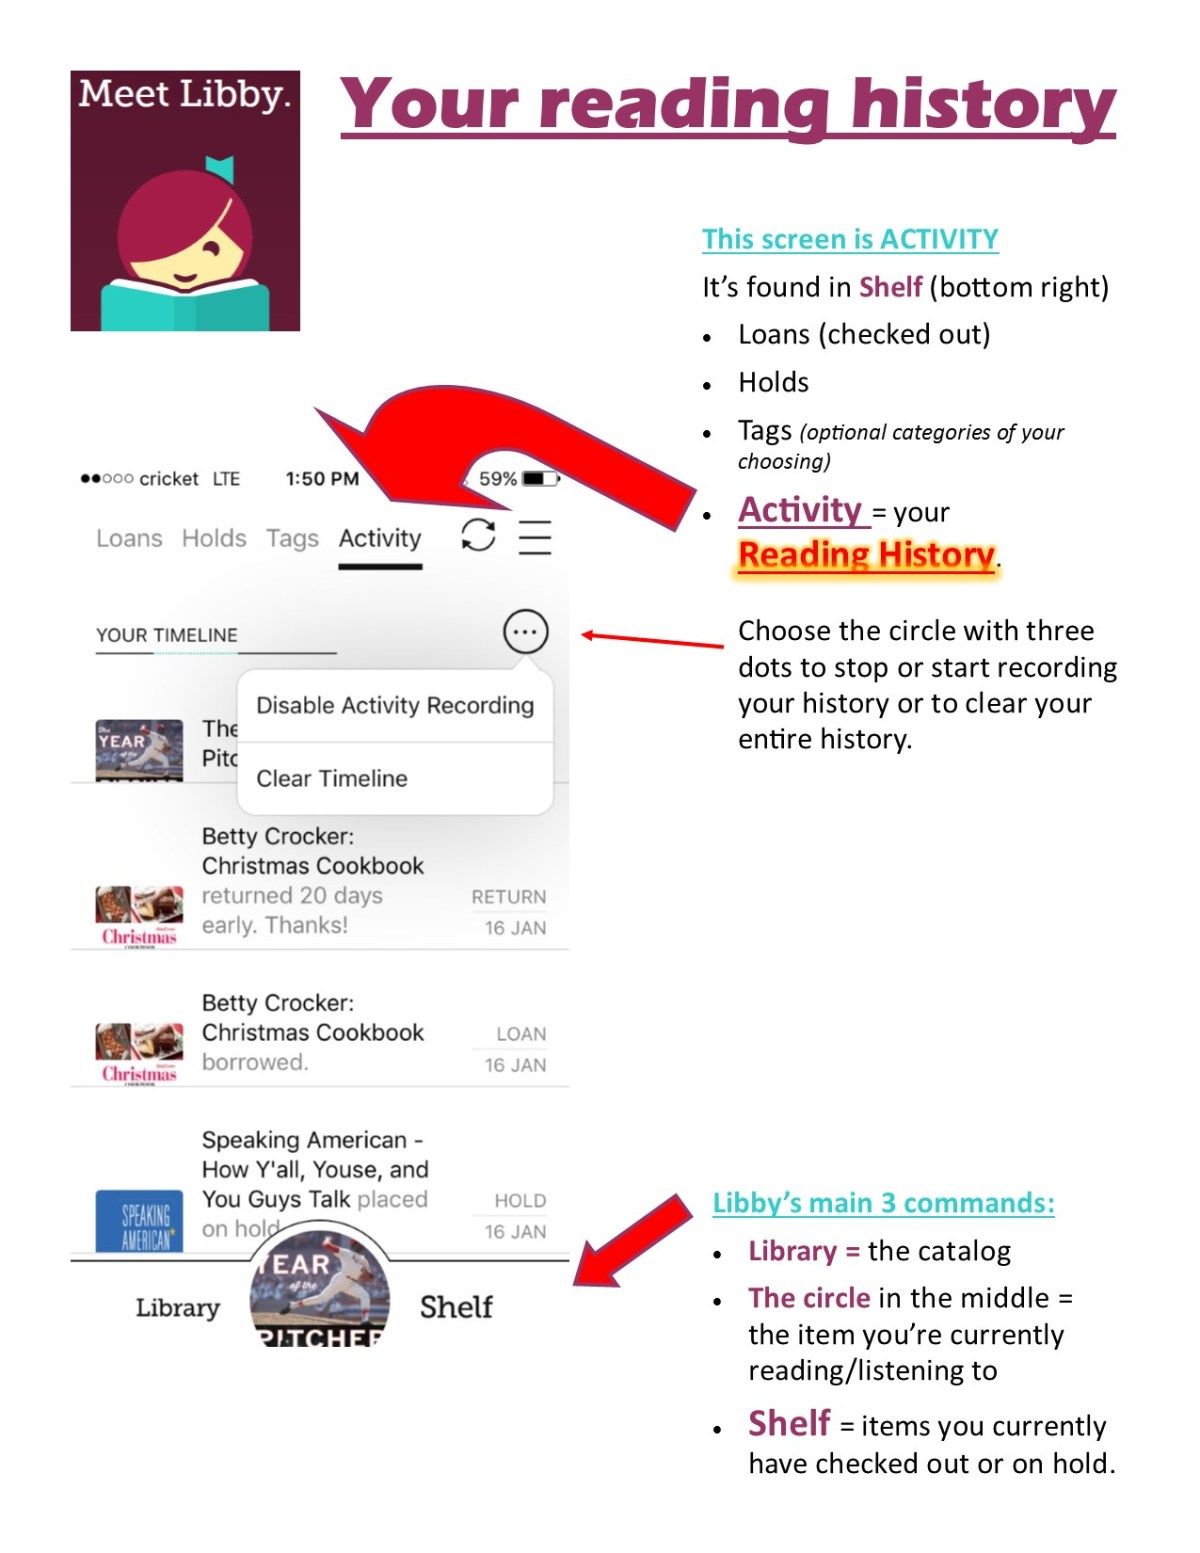 libby how to find reading activity